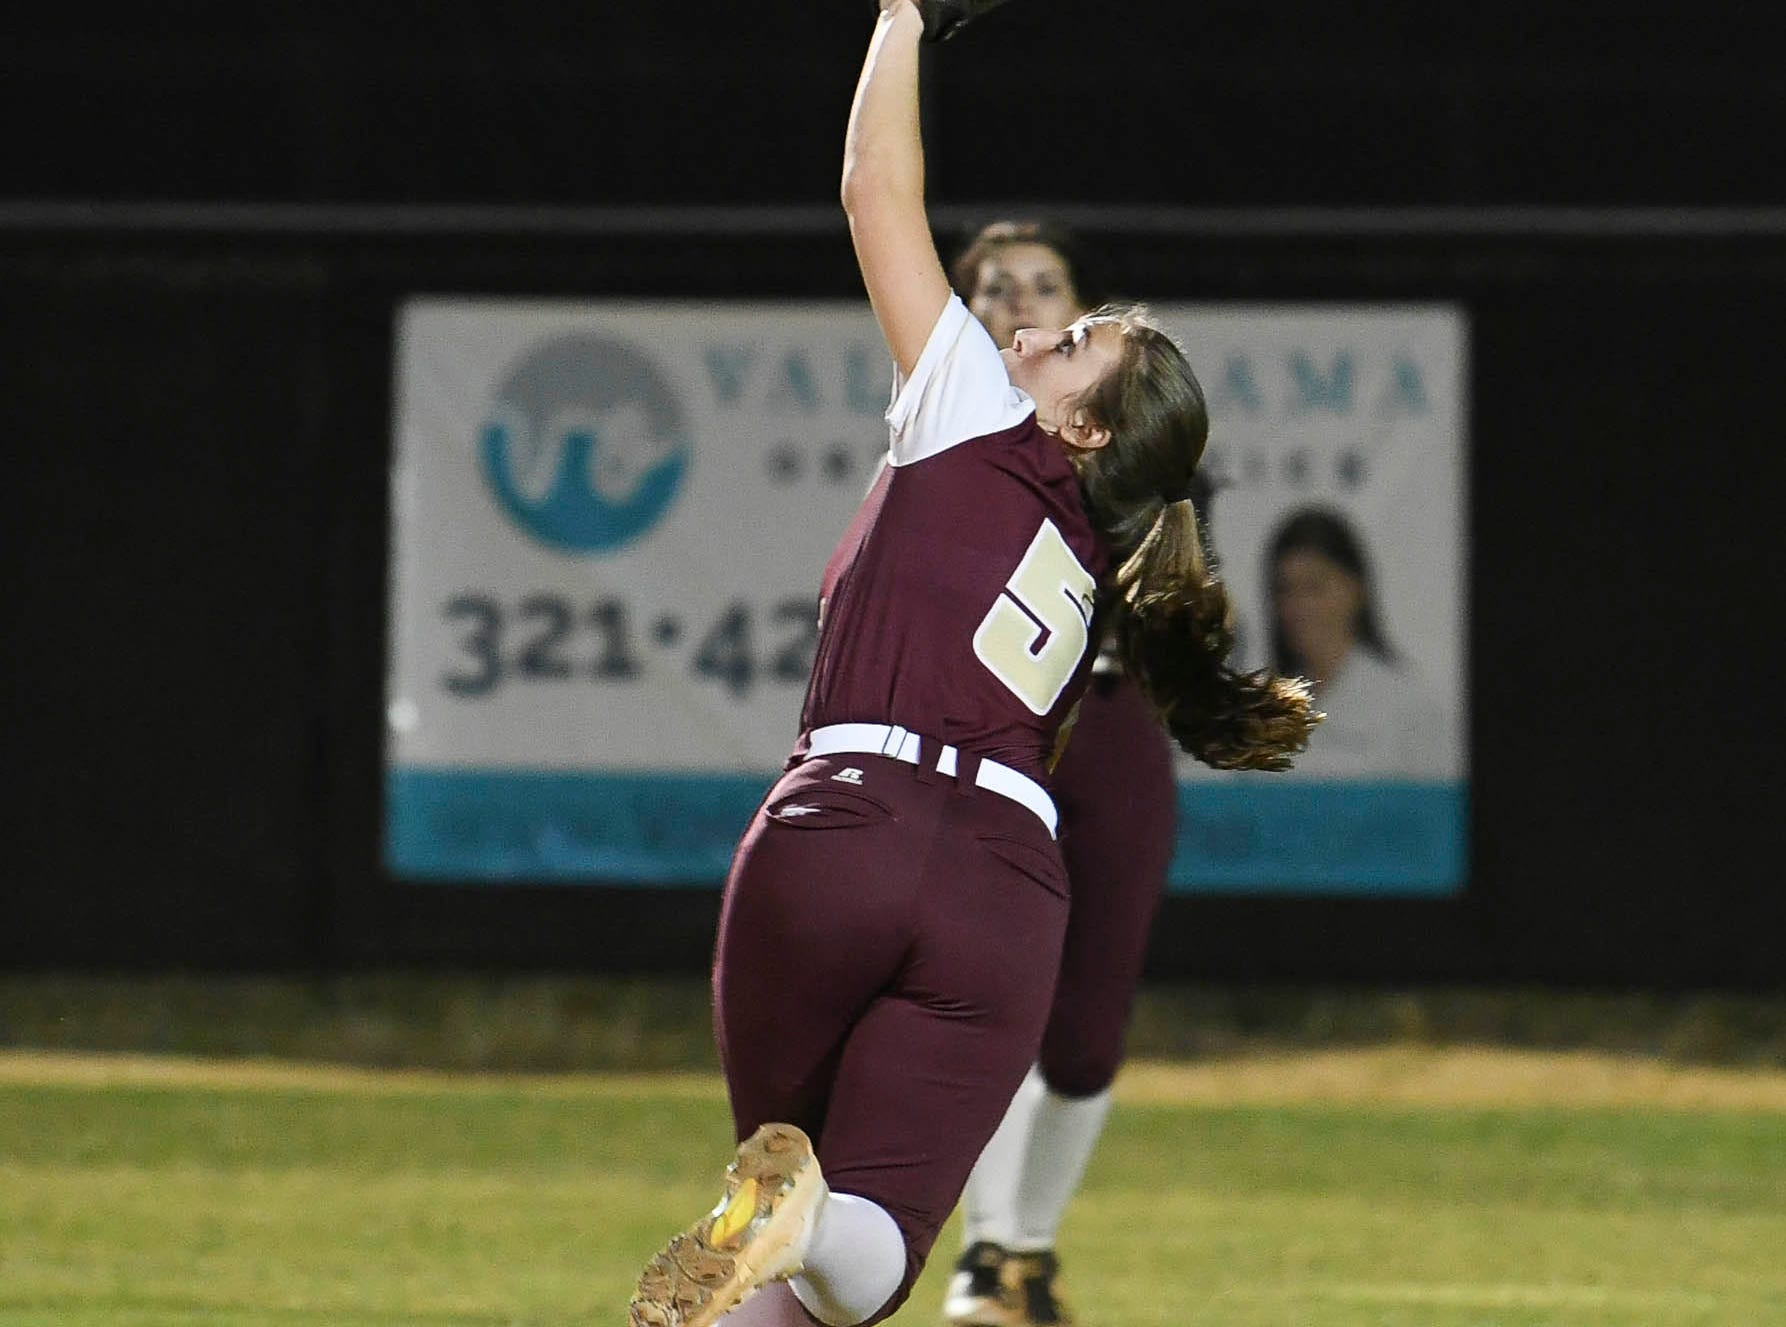 R. Rhodes of Astronaut tracks down a fly ball in the outfield during Wednesday's game against Rockledge.